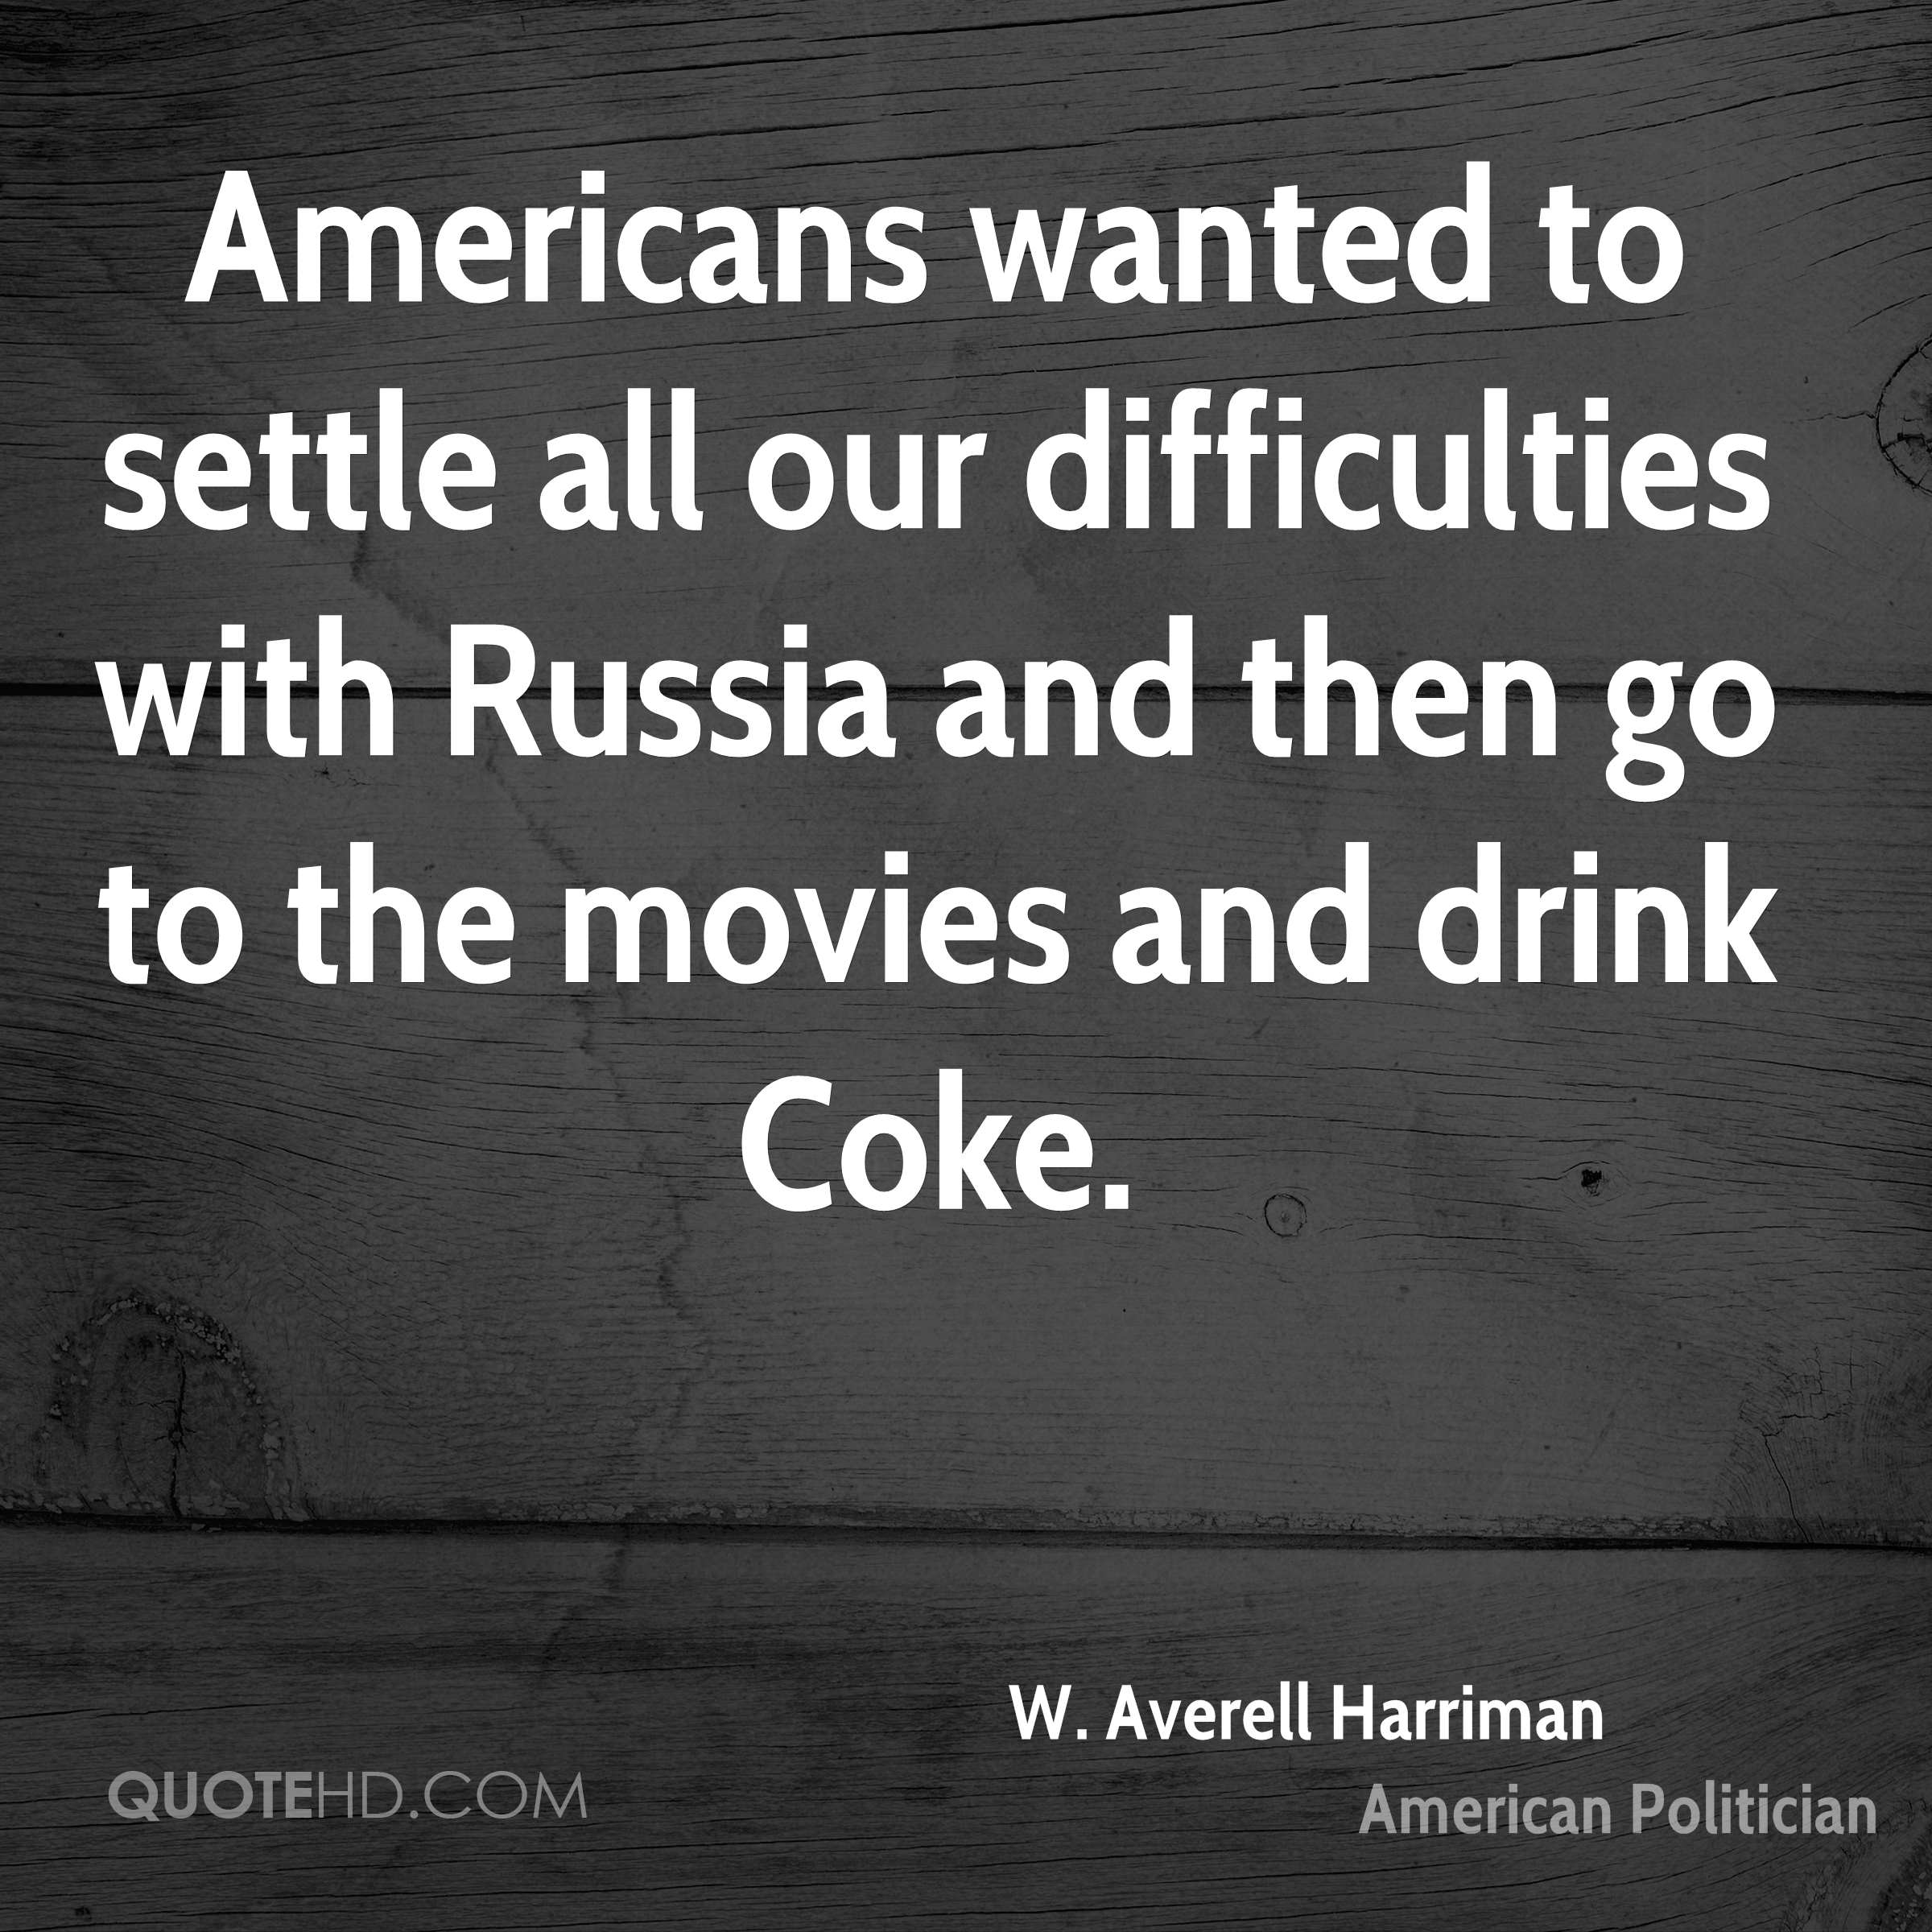 Americans wanted to settle all our difficulties with Russia and then go to the movies and drink Coke.